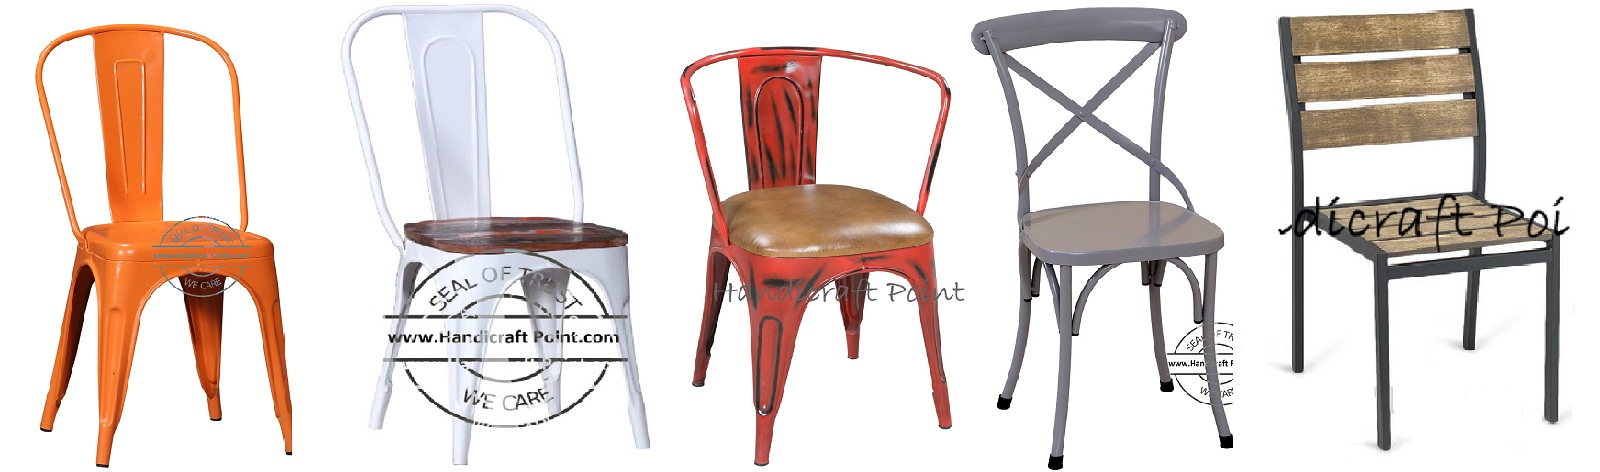 Industrial Restaurant Chairs